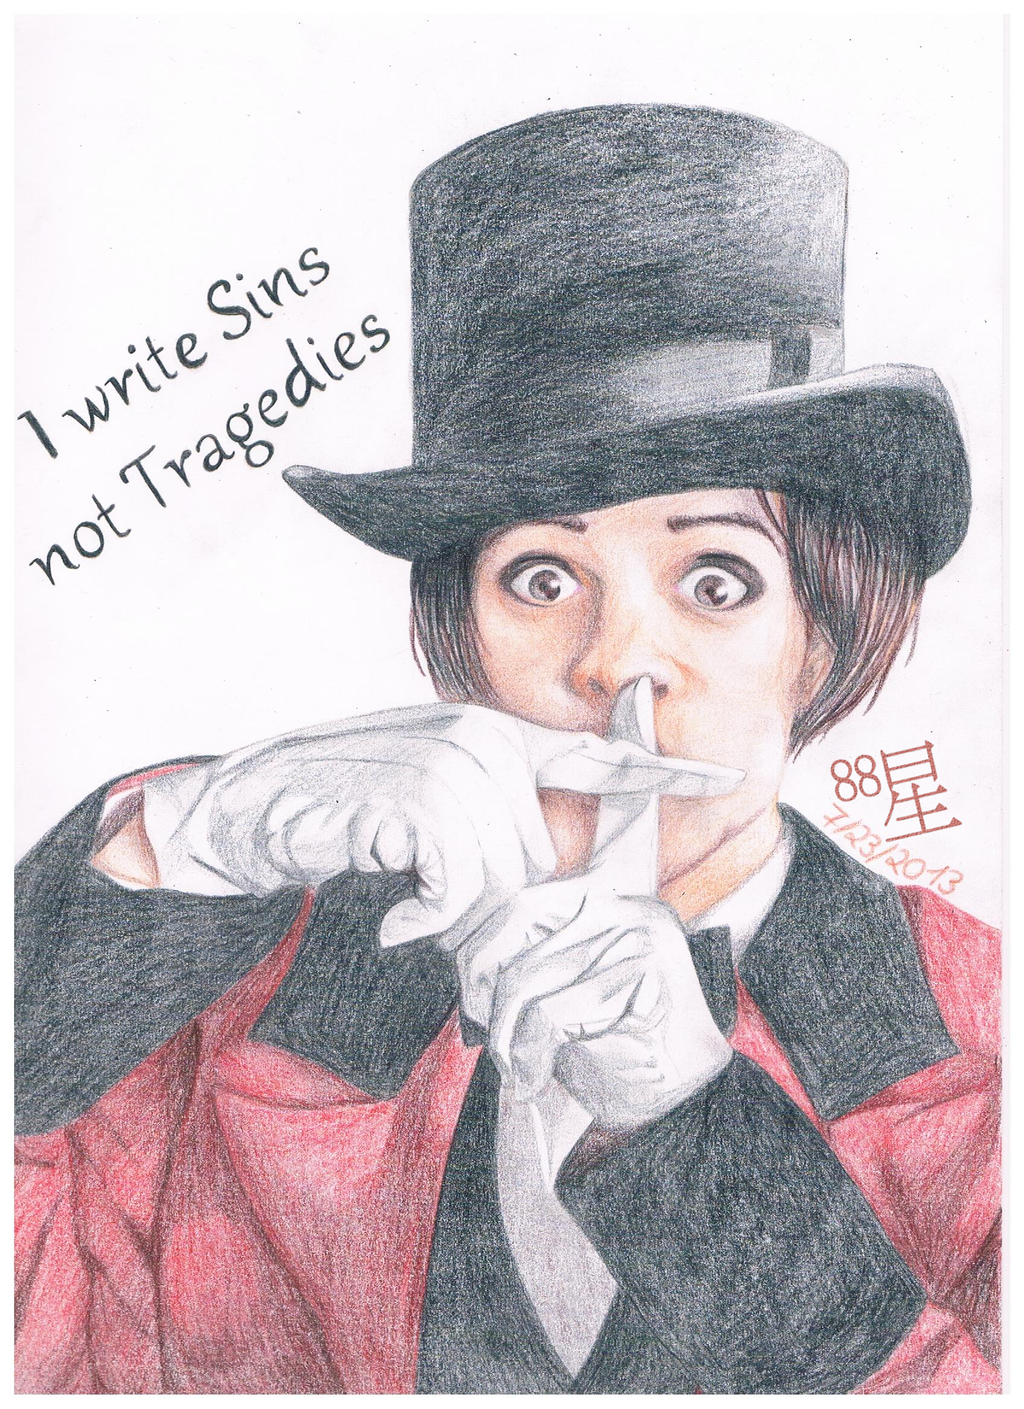 Sins (Parody I Write Sins Not Tragedies By Panic! At the Disco